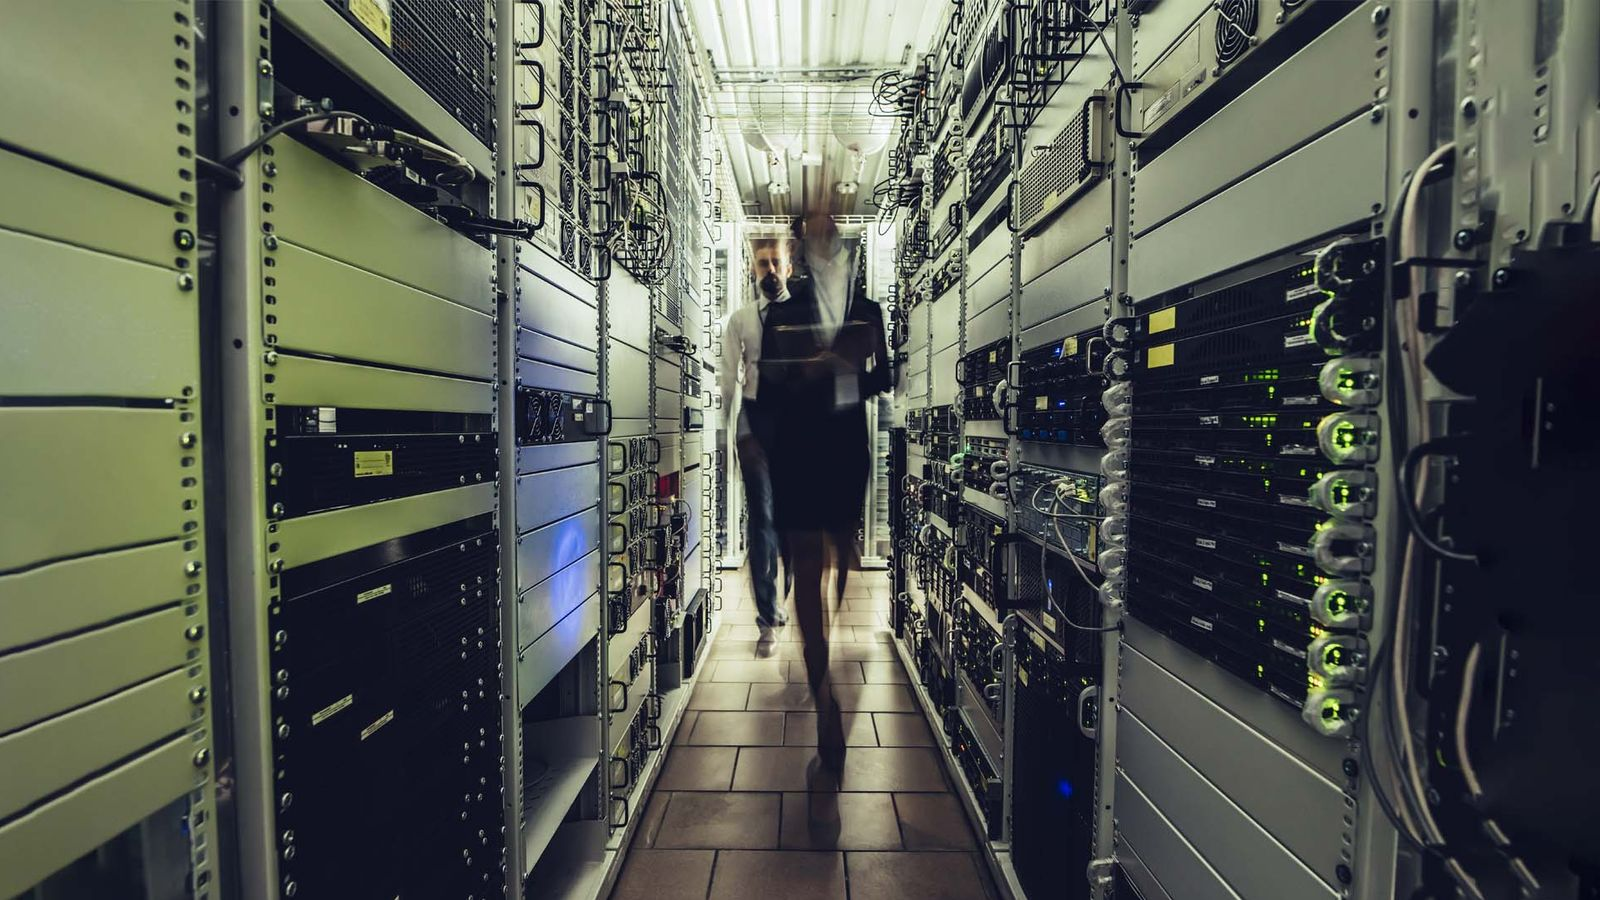 Warning issued over financial sector's reliance on cloud computing